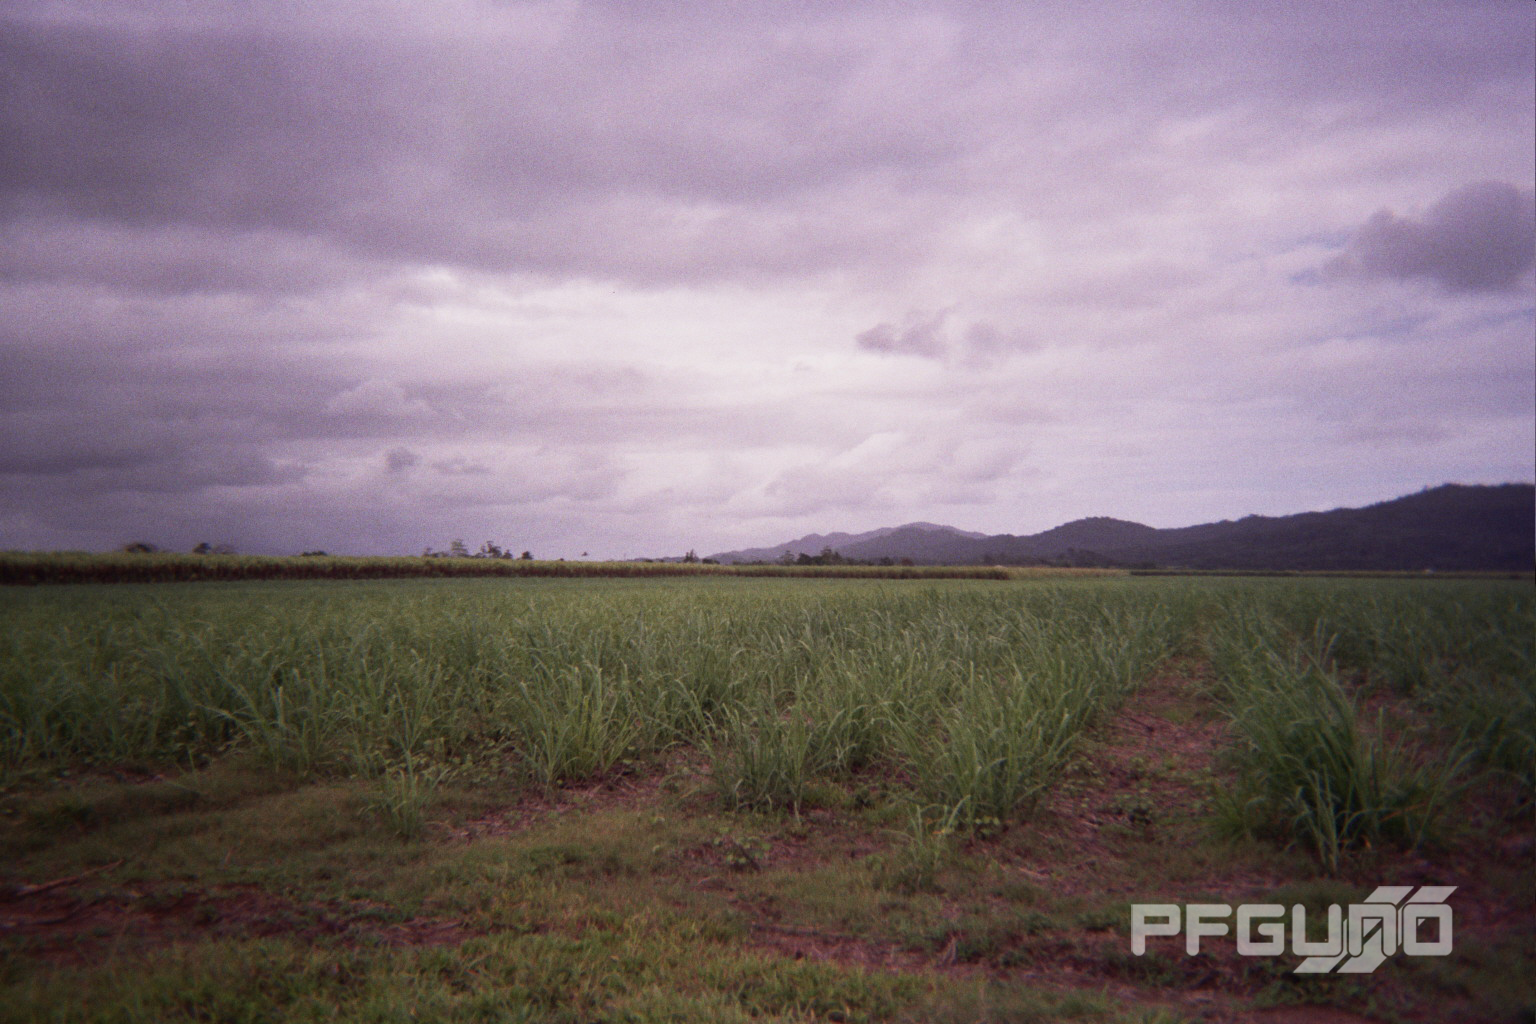 The Mountain And The Sugarcane [SHOT 2]